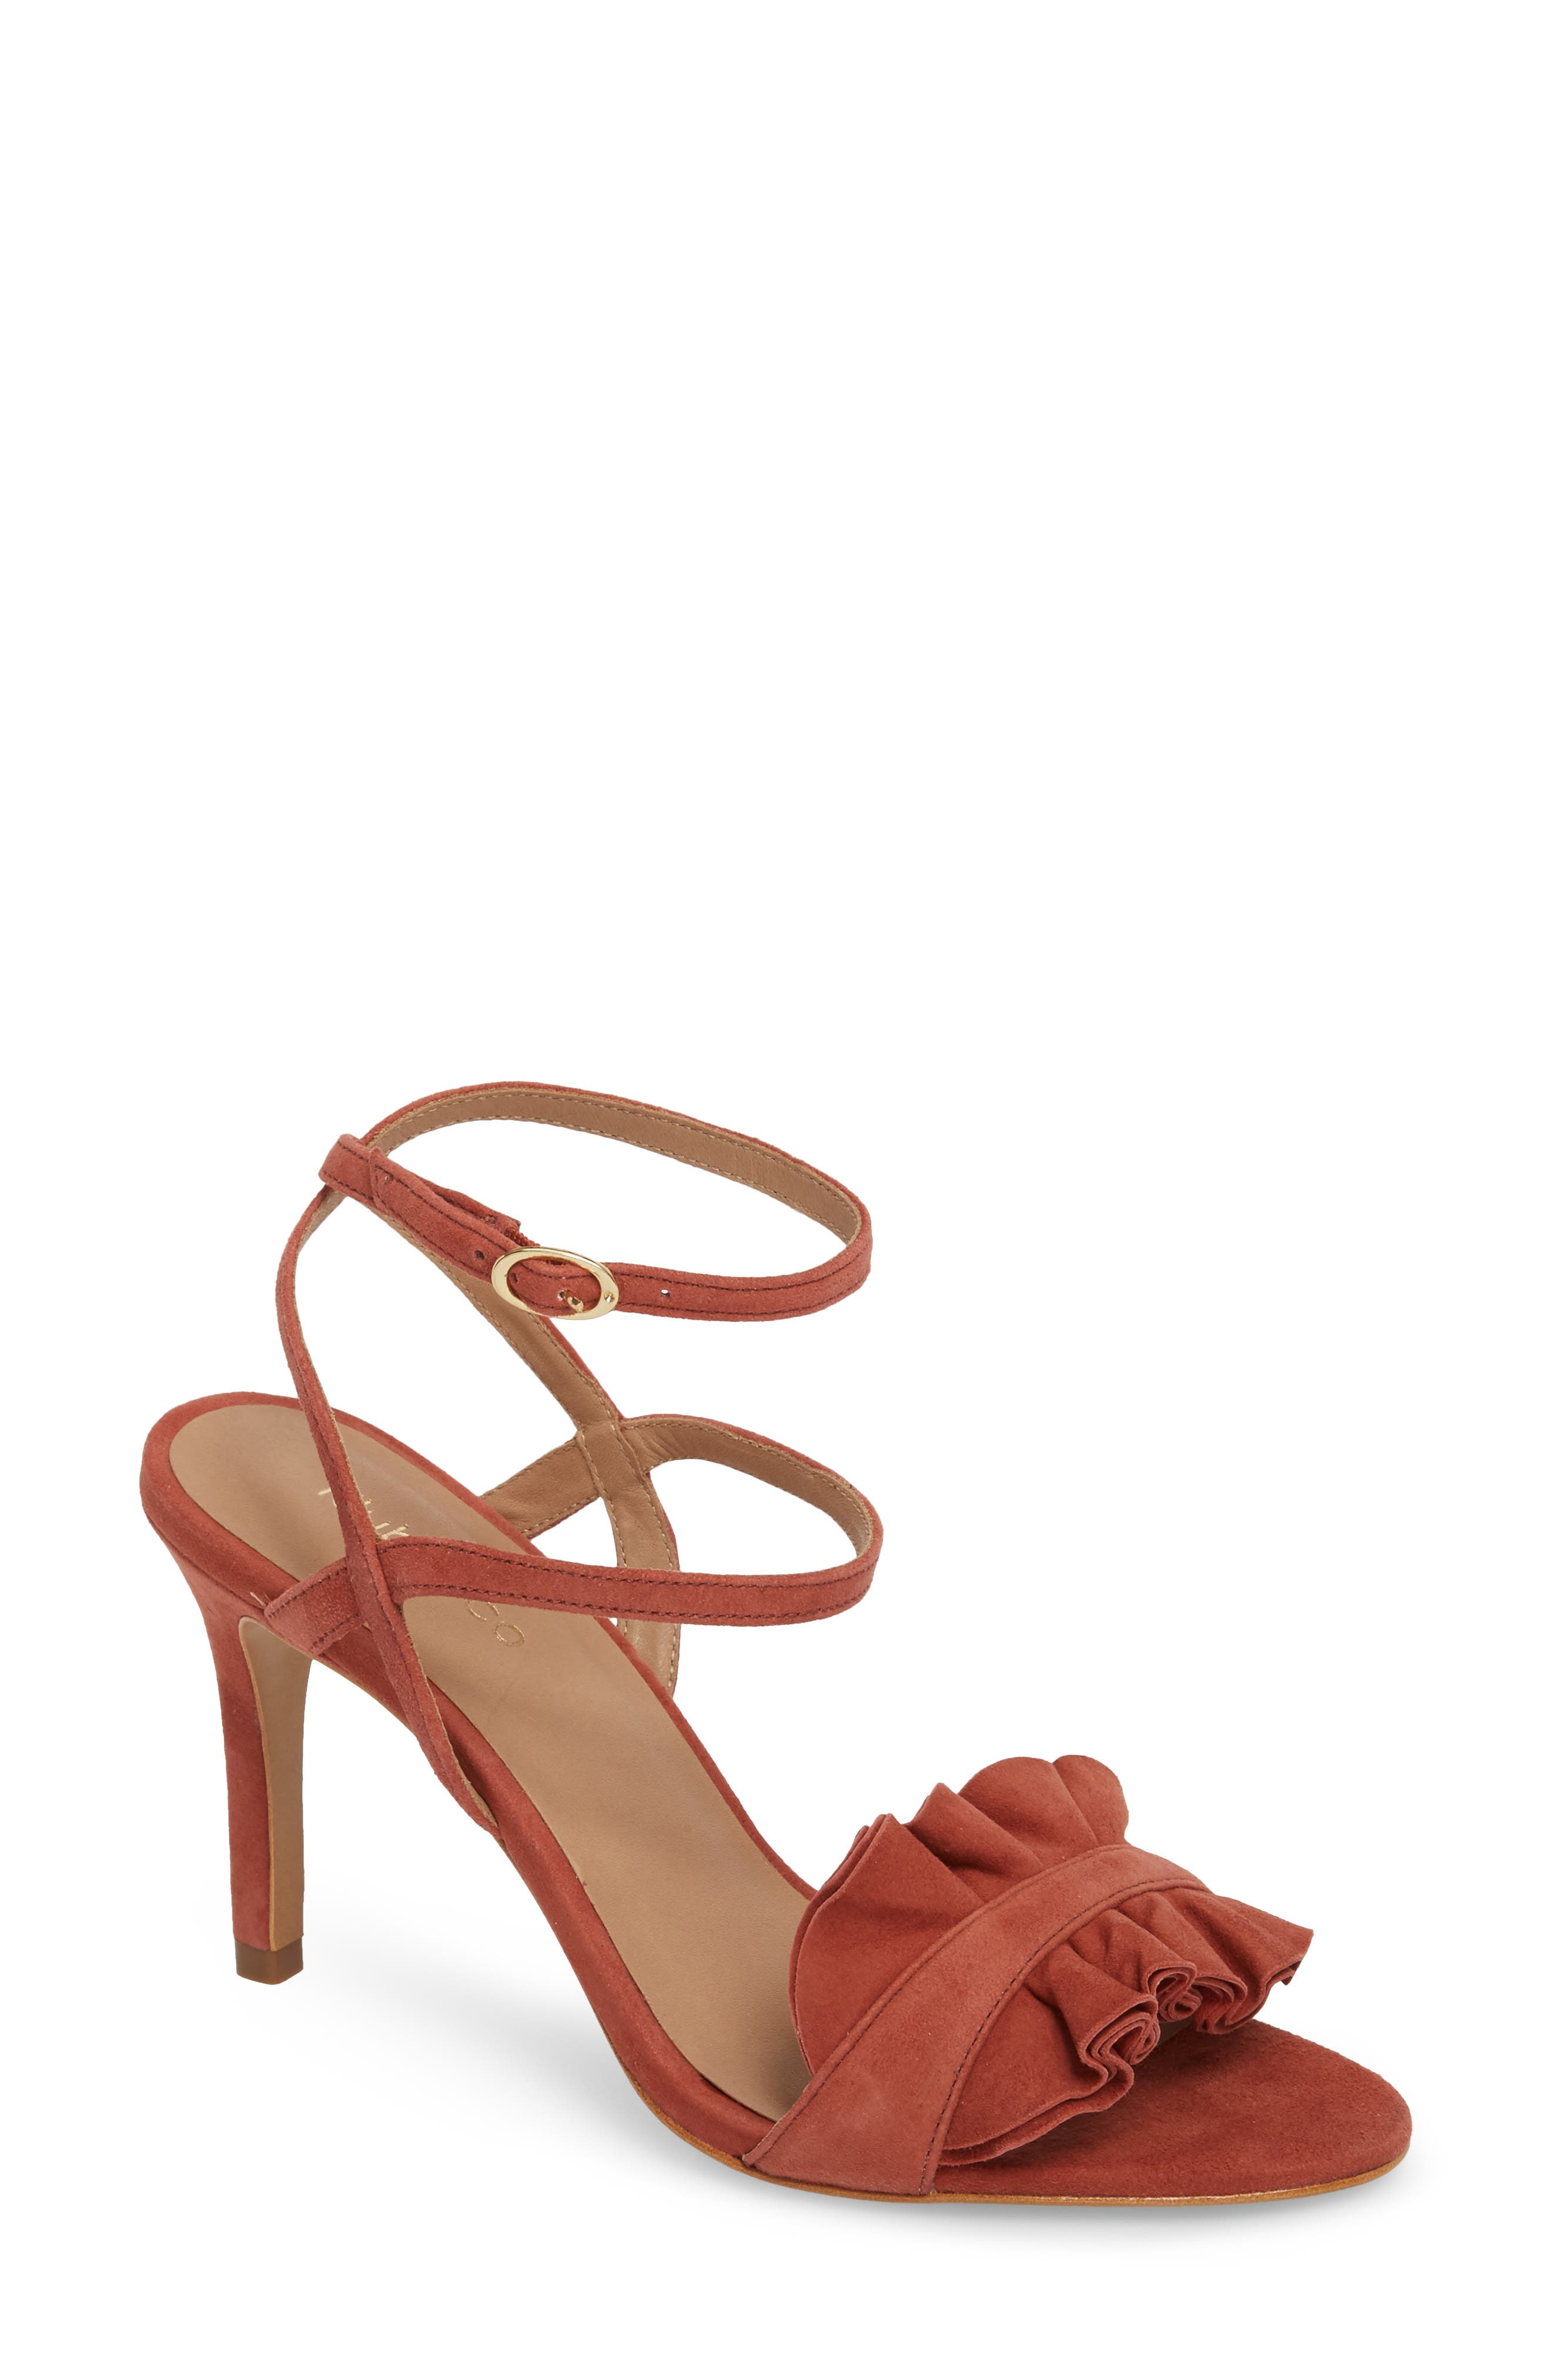 Ansley Sandal,                         Main,                         color, Spice Suede